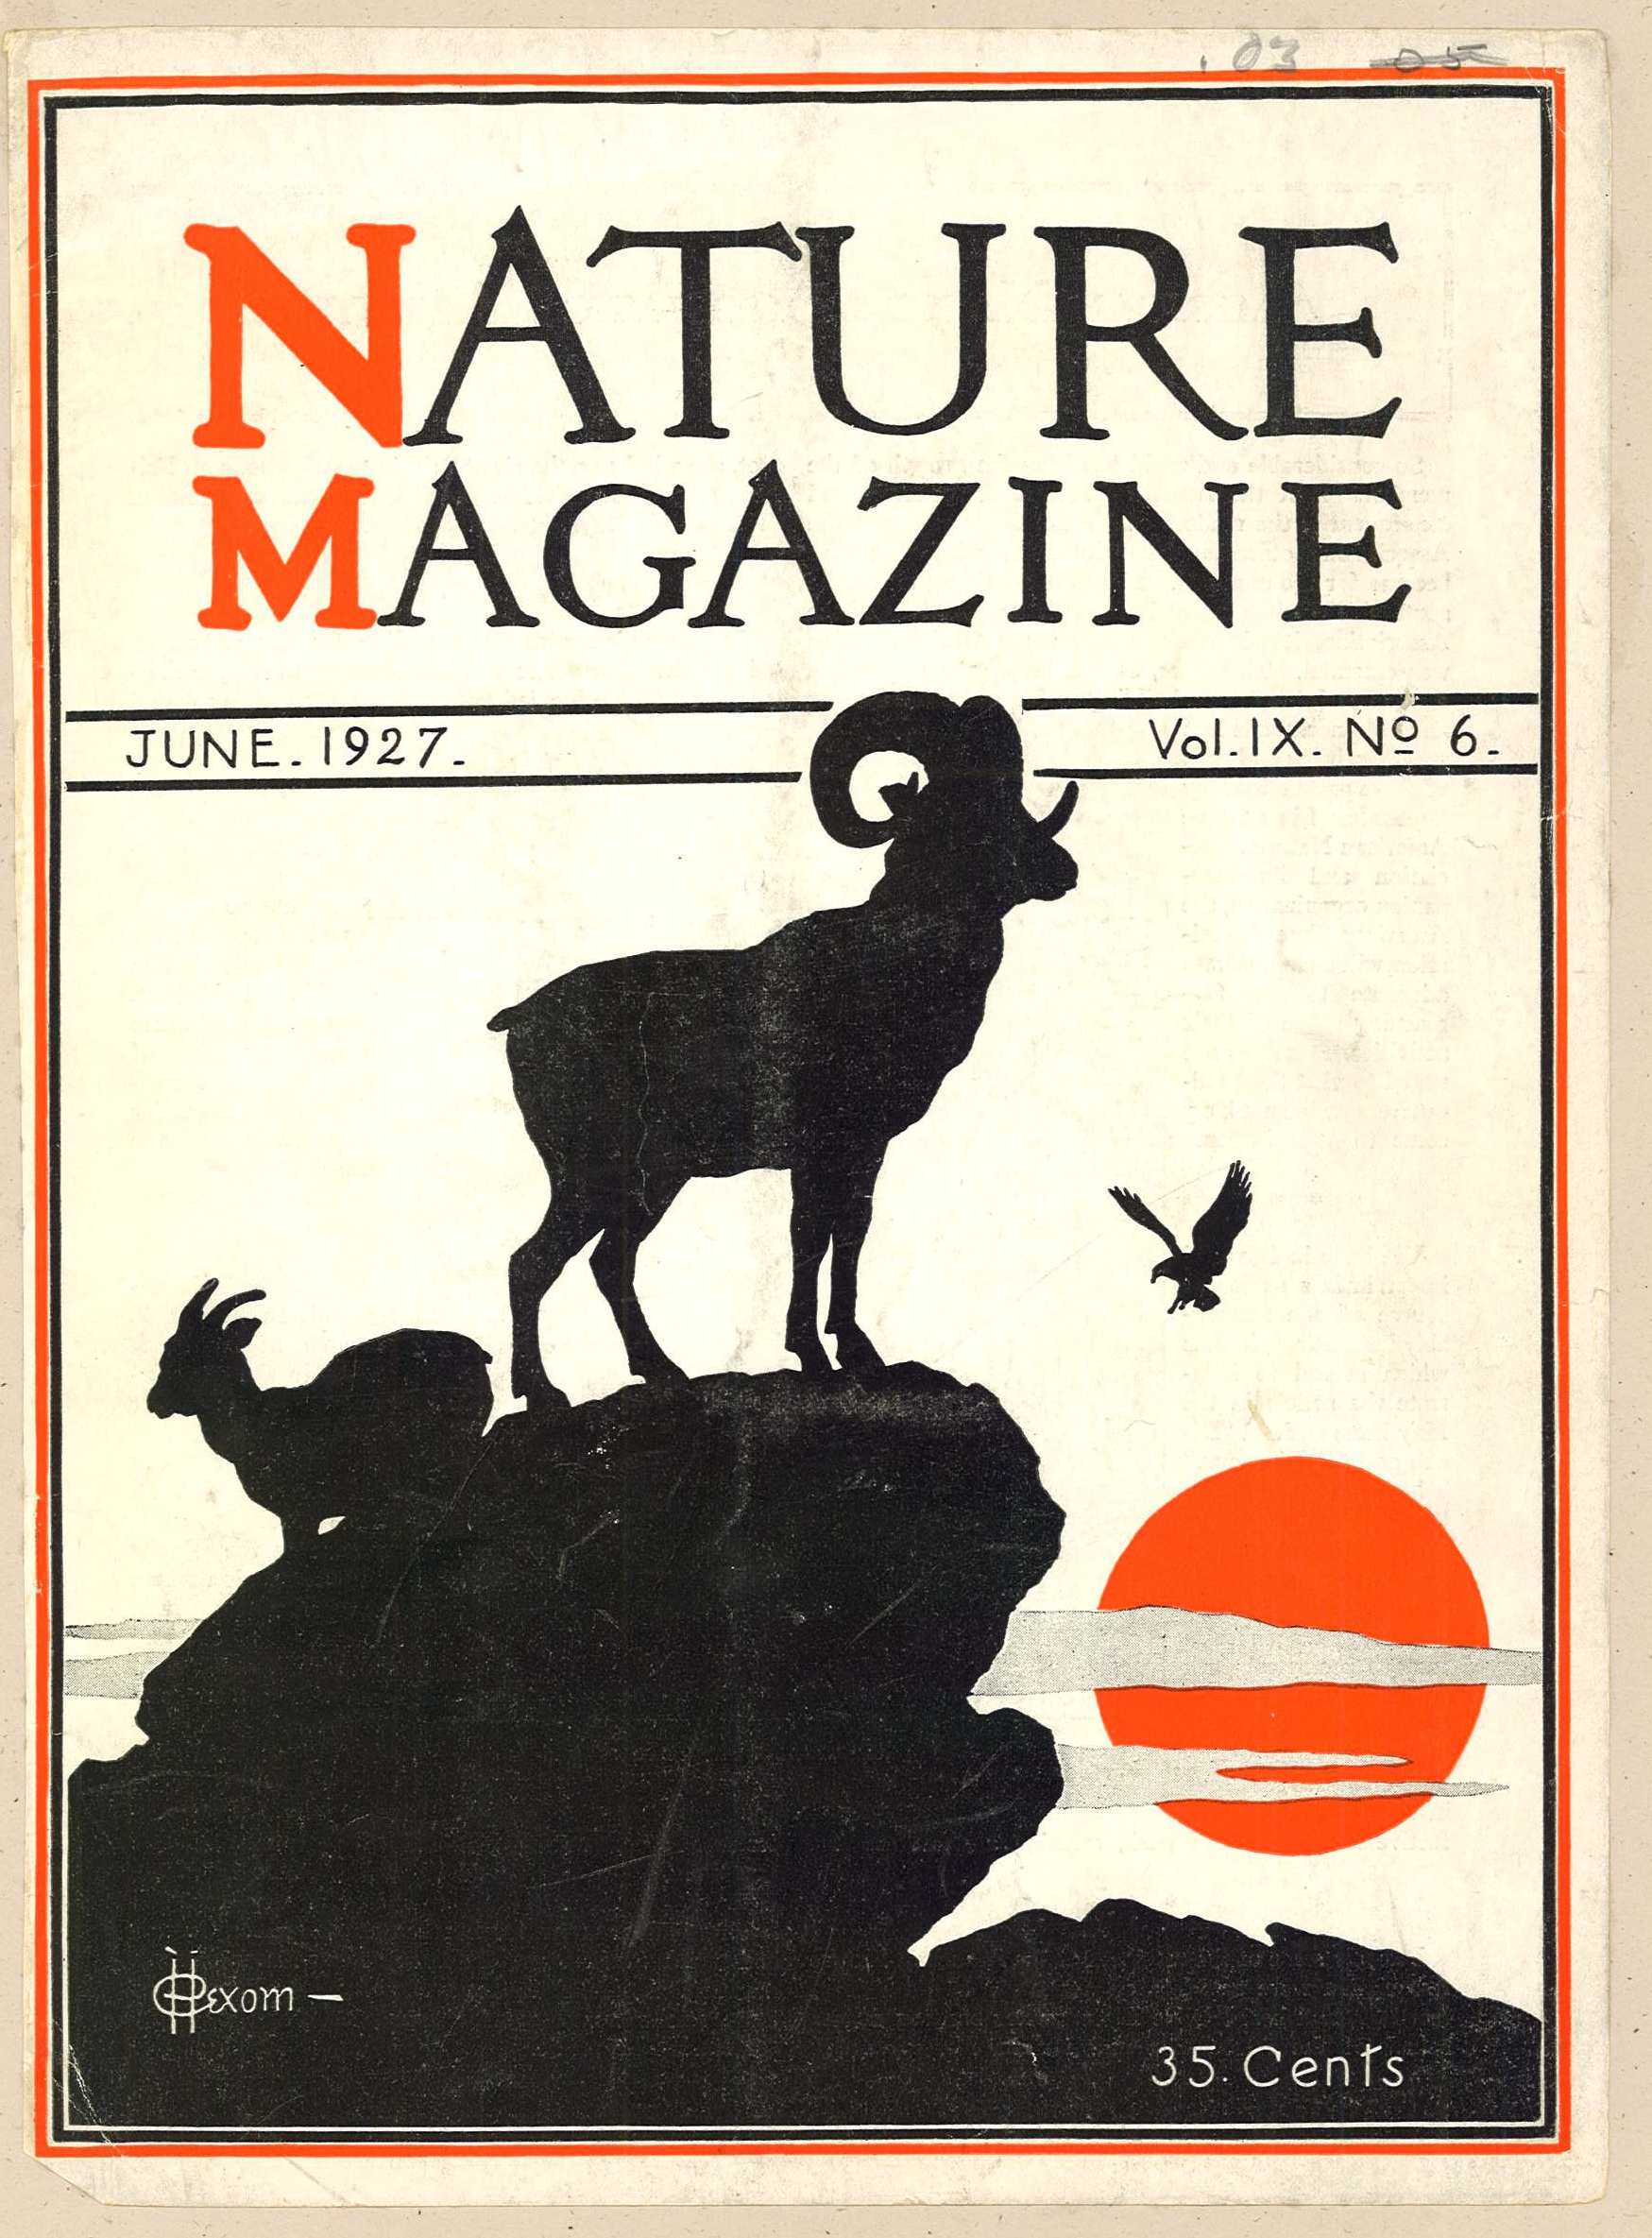 magazine nature 1927 covers 1920 june collections library 1929 silhouettes took auction website information sva periodicals svapicsandmags